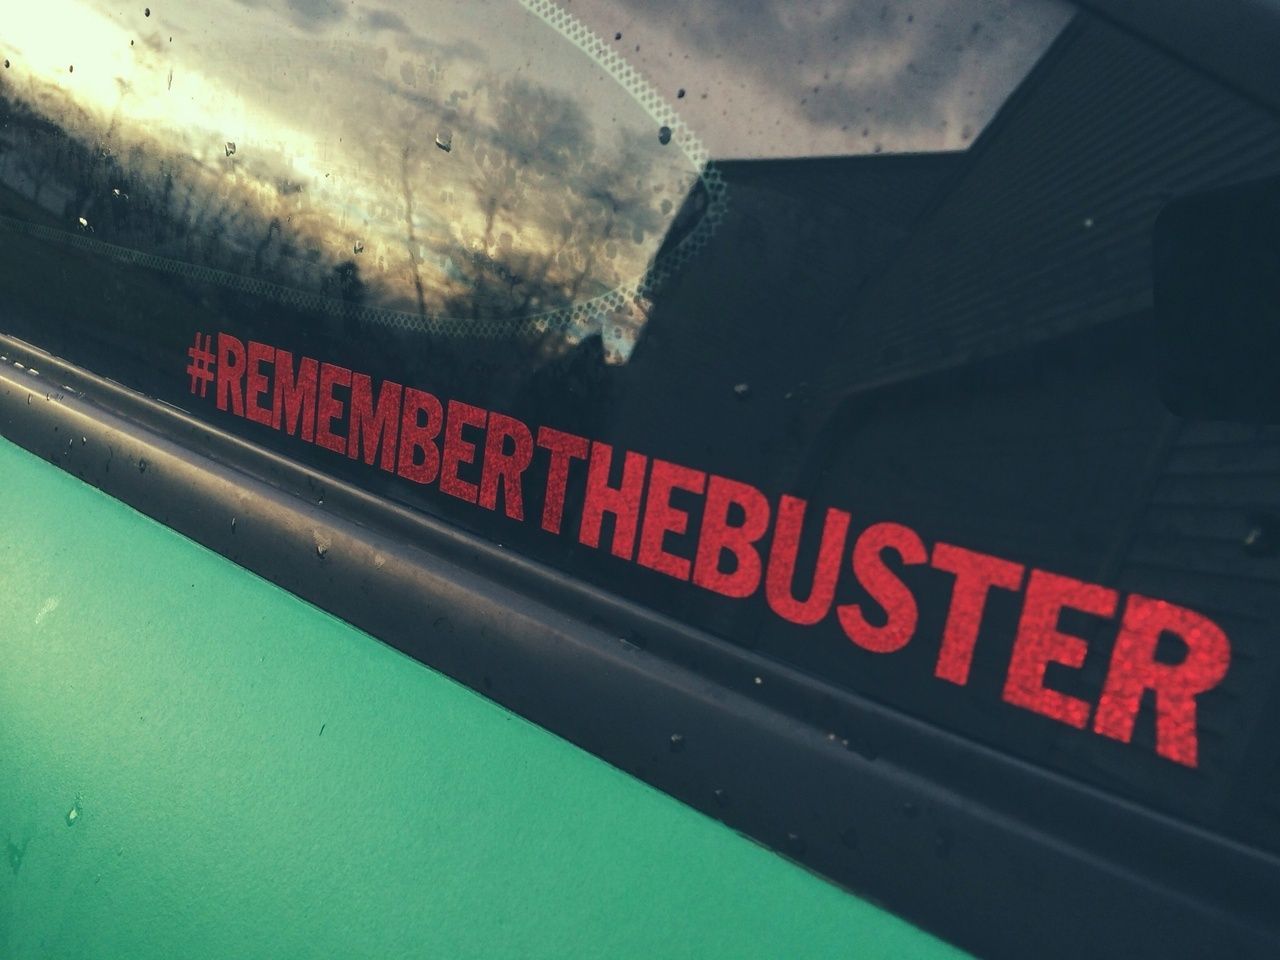 Rememberthebuster overnight decals from japan